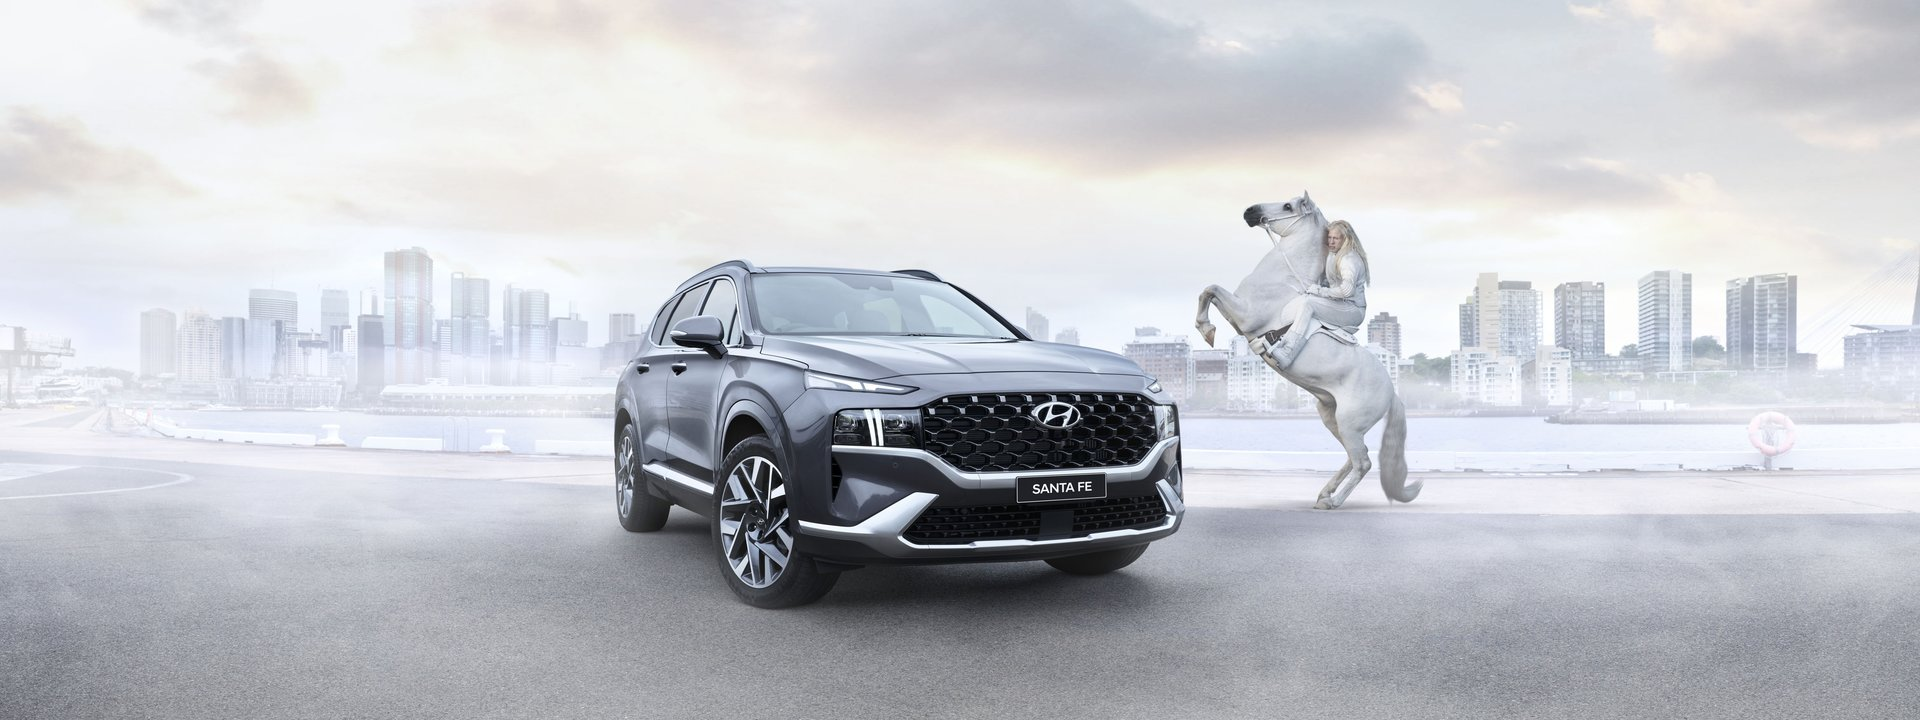 Hyundai l All-New Santa Fe